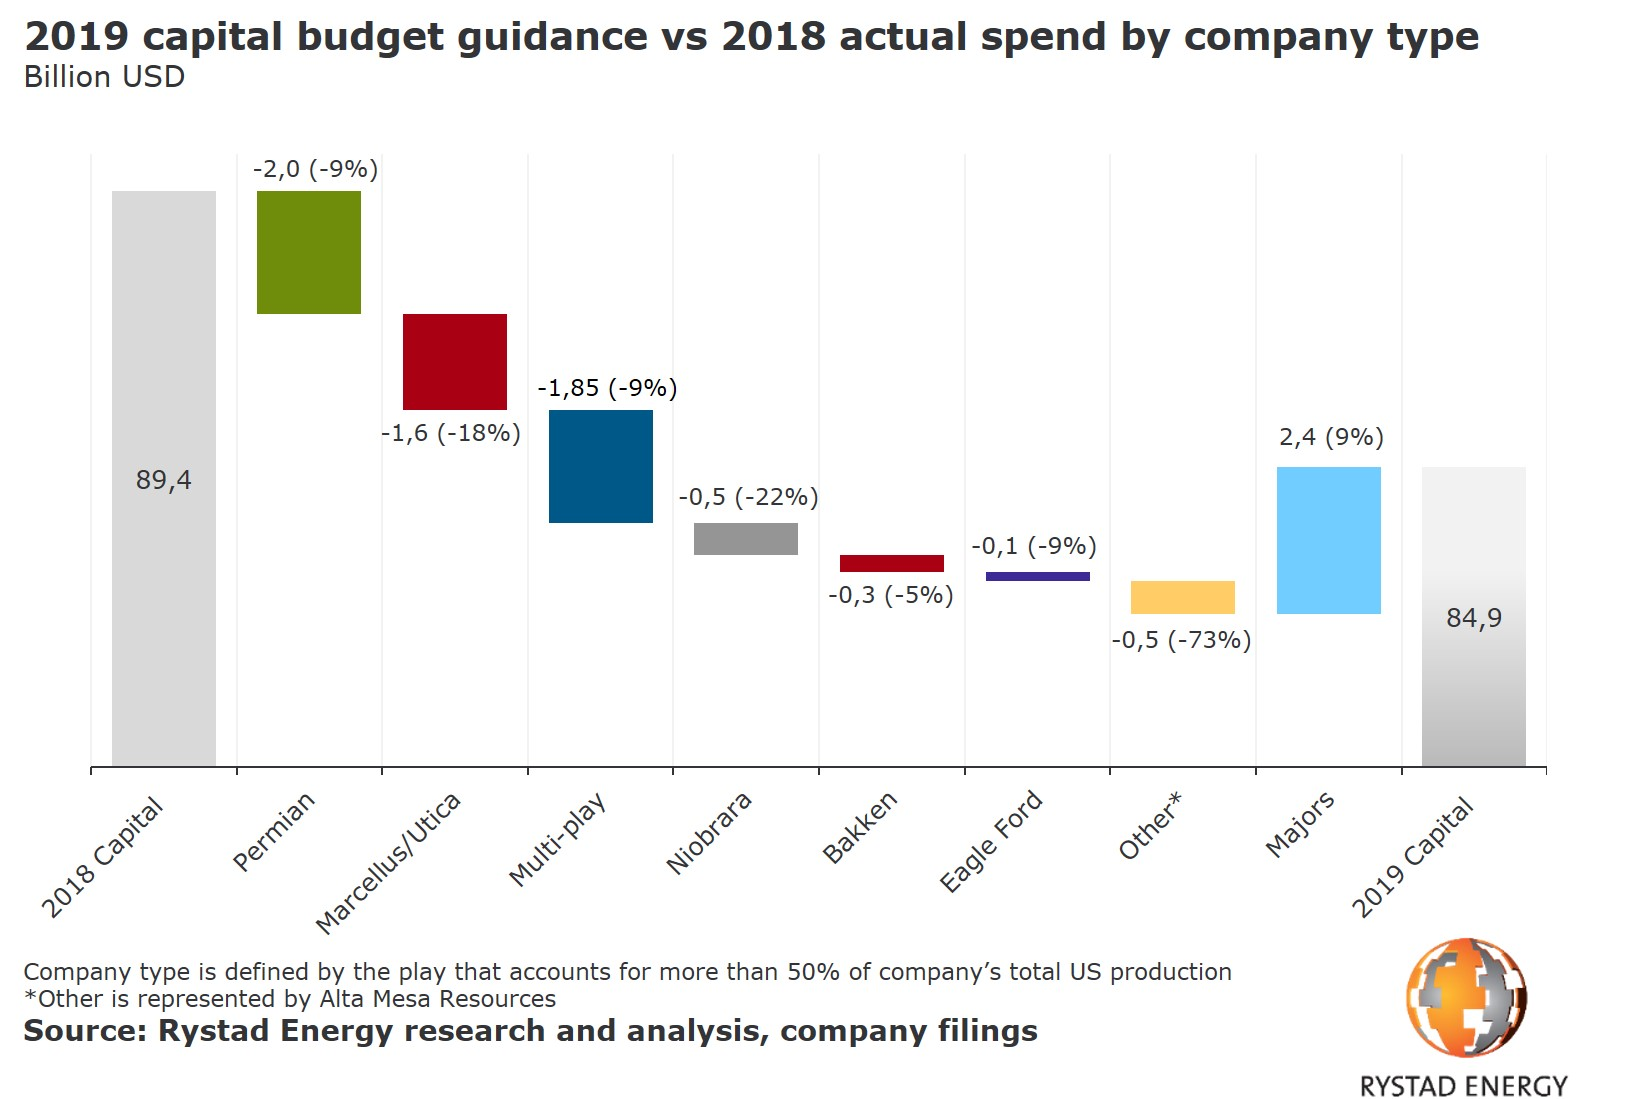 A chart showing 2019 capital budget guidance vs 2018 actual spend by company type. Source: Rystad Energy research and analysis